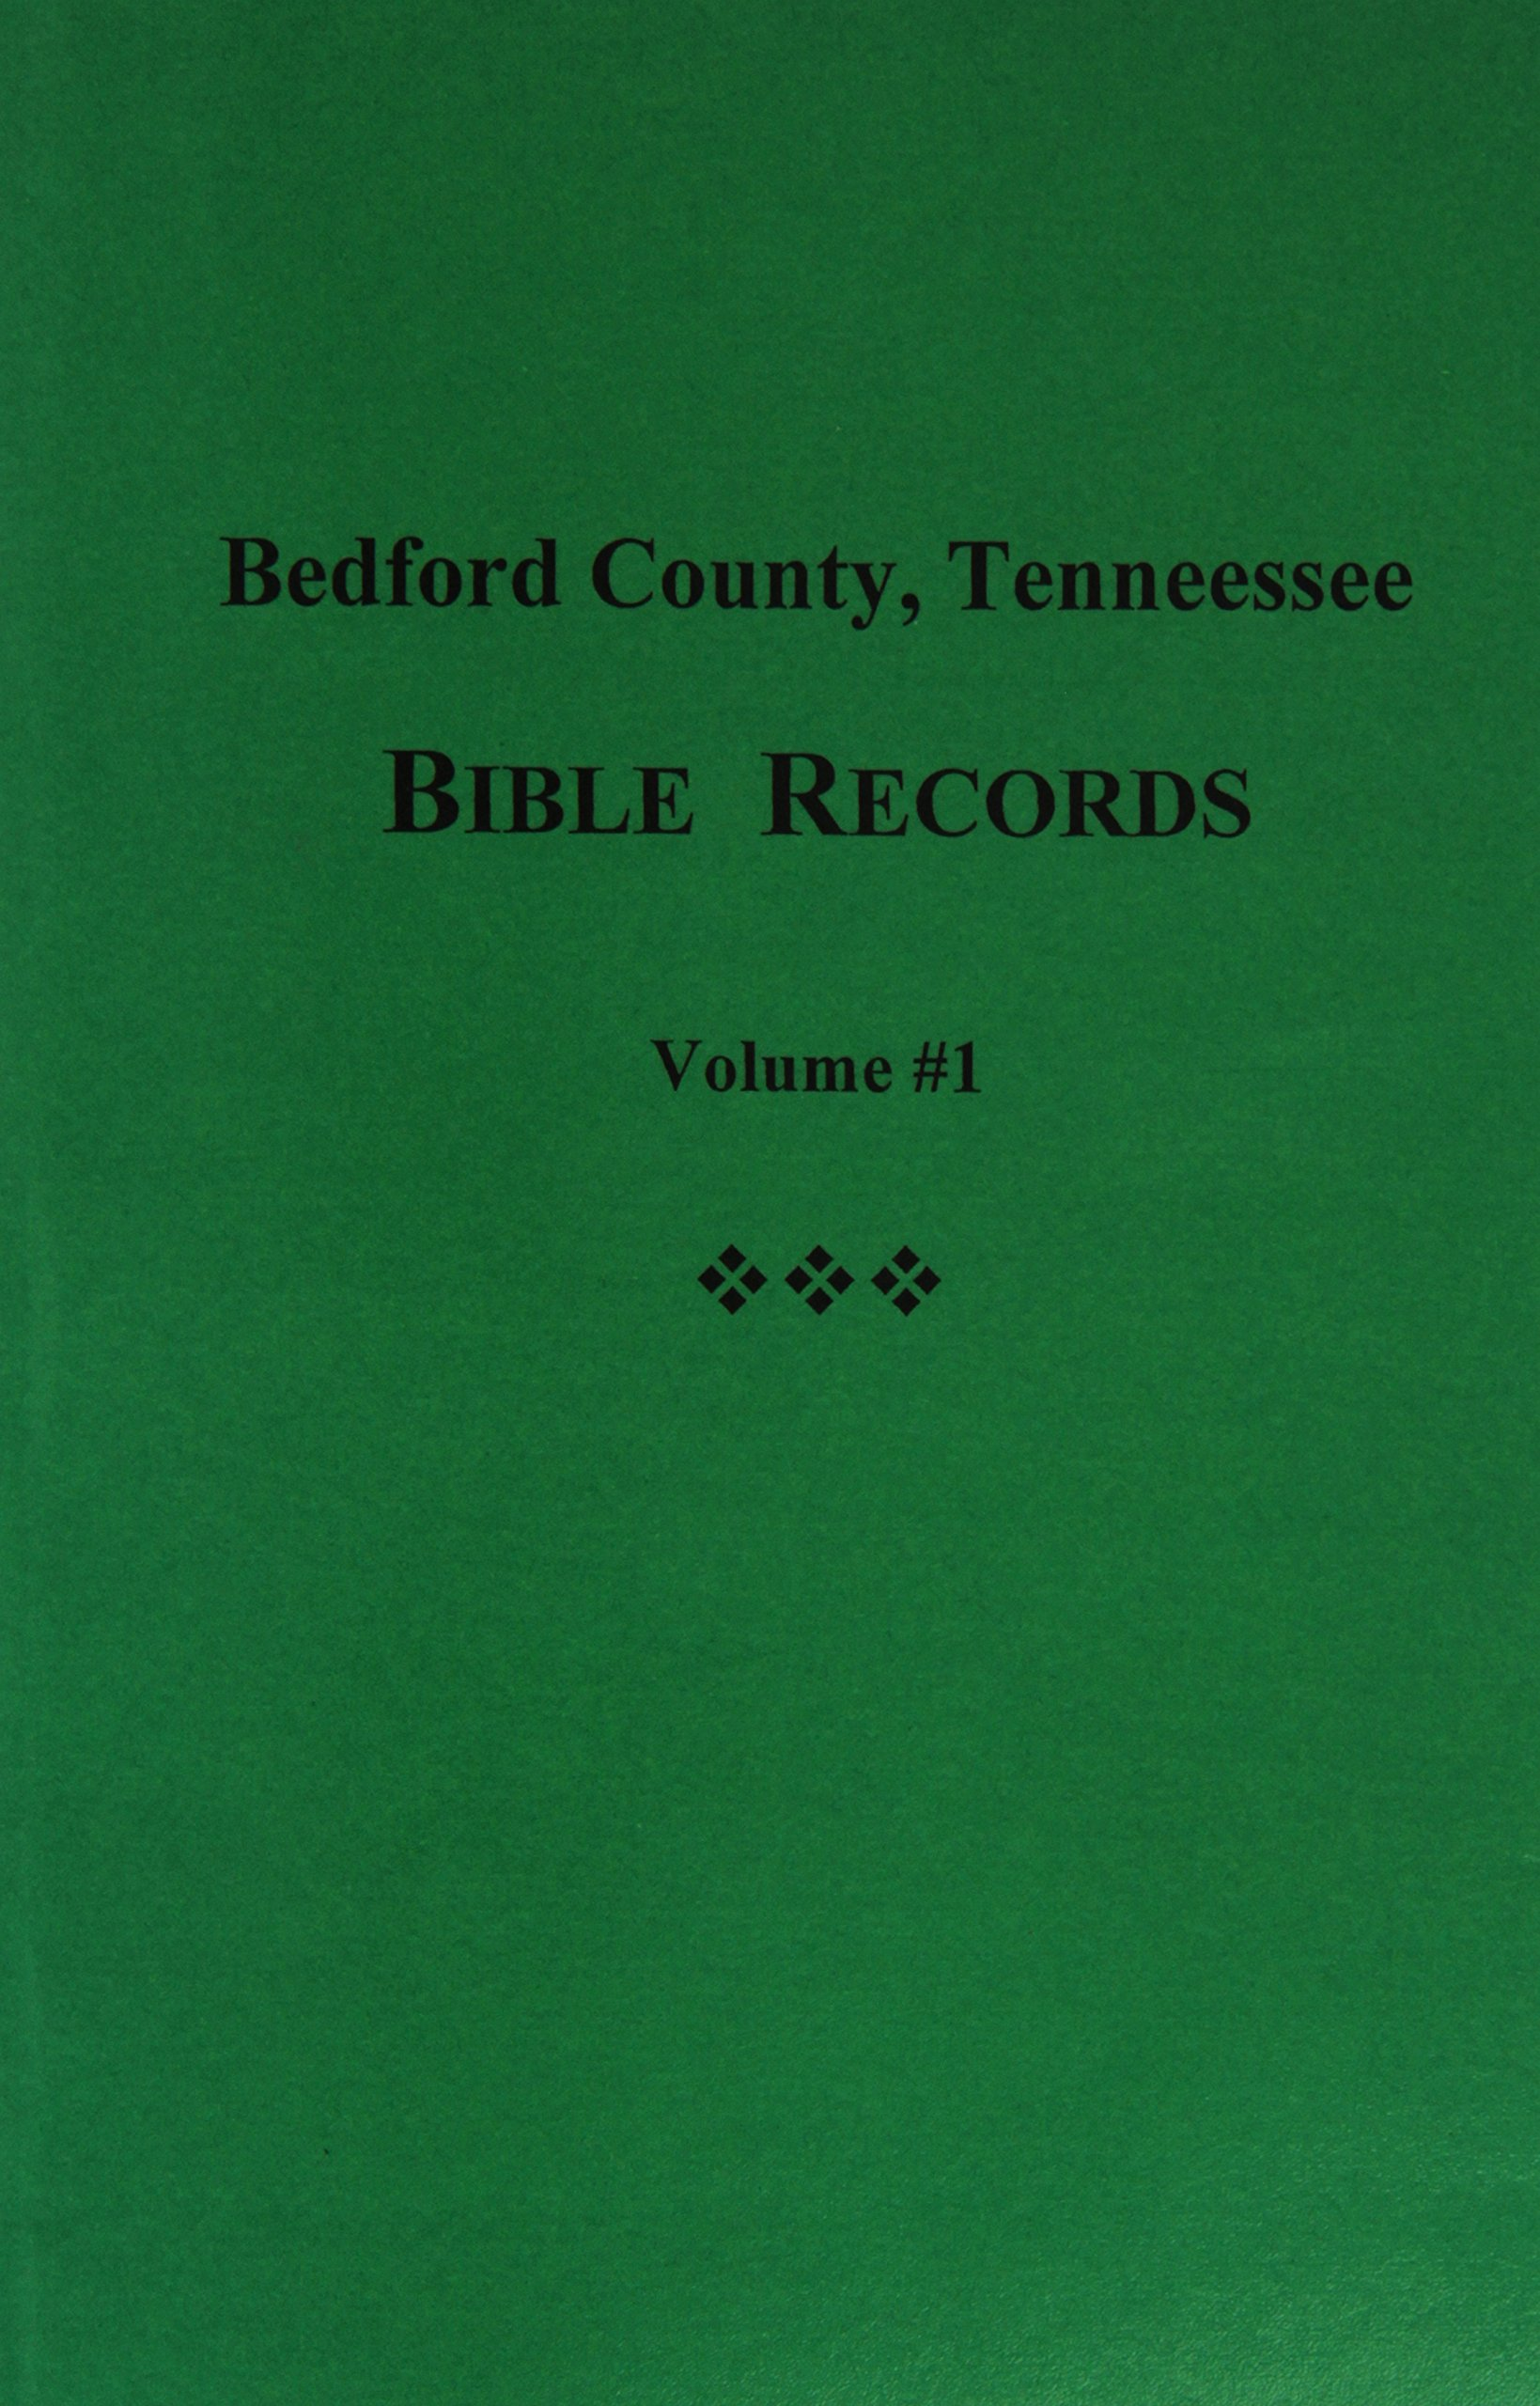 Bedford County, Tennessee Bible Records - Vol. #1 pdf